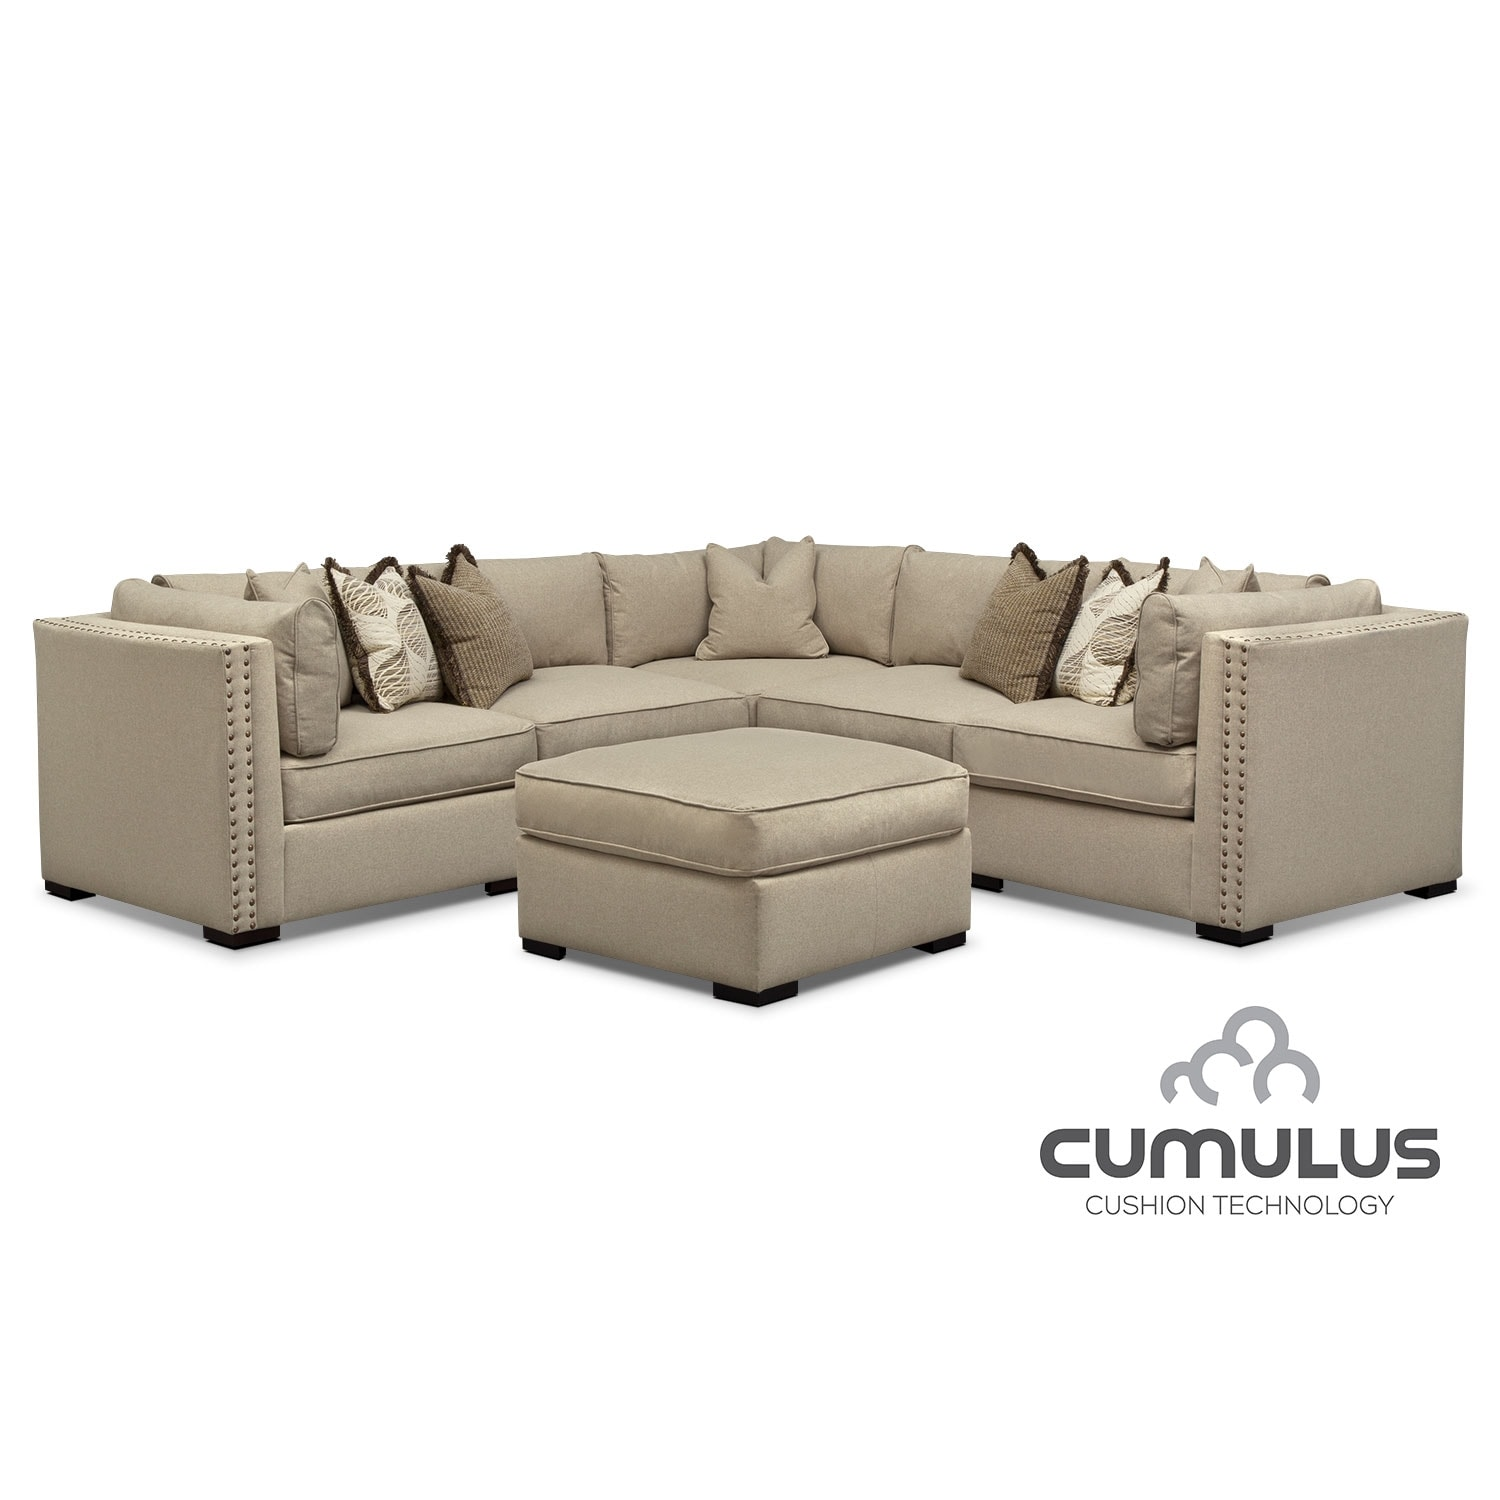 Athens 5-Piece Sectional and Cocktail Ottoman Set - Taupe